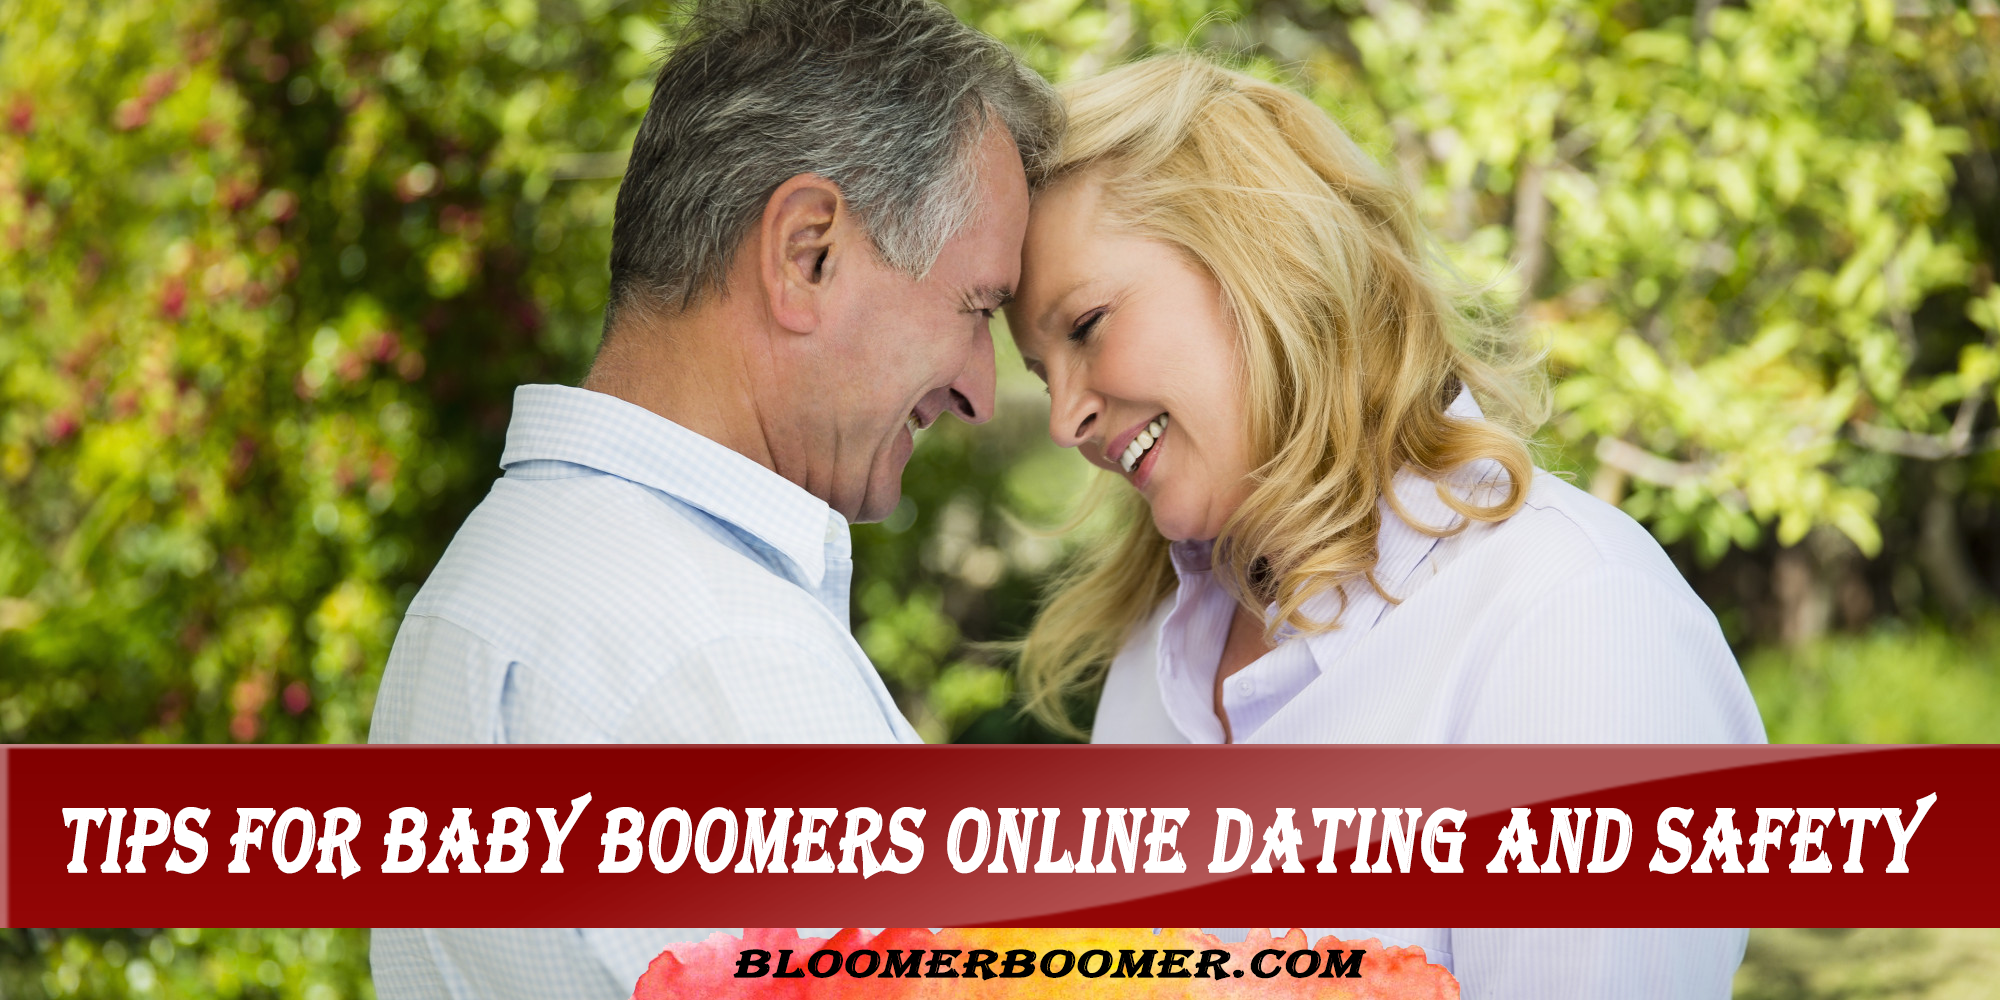 Boomers on line dating